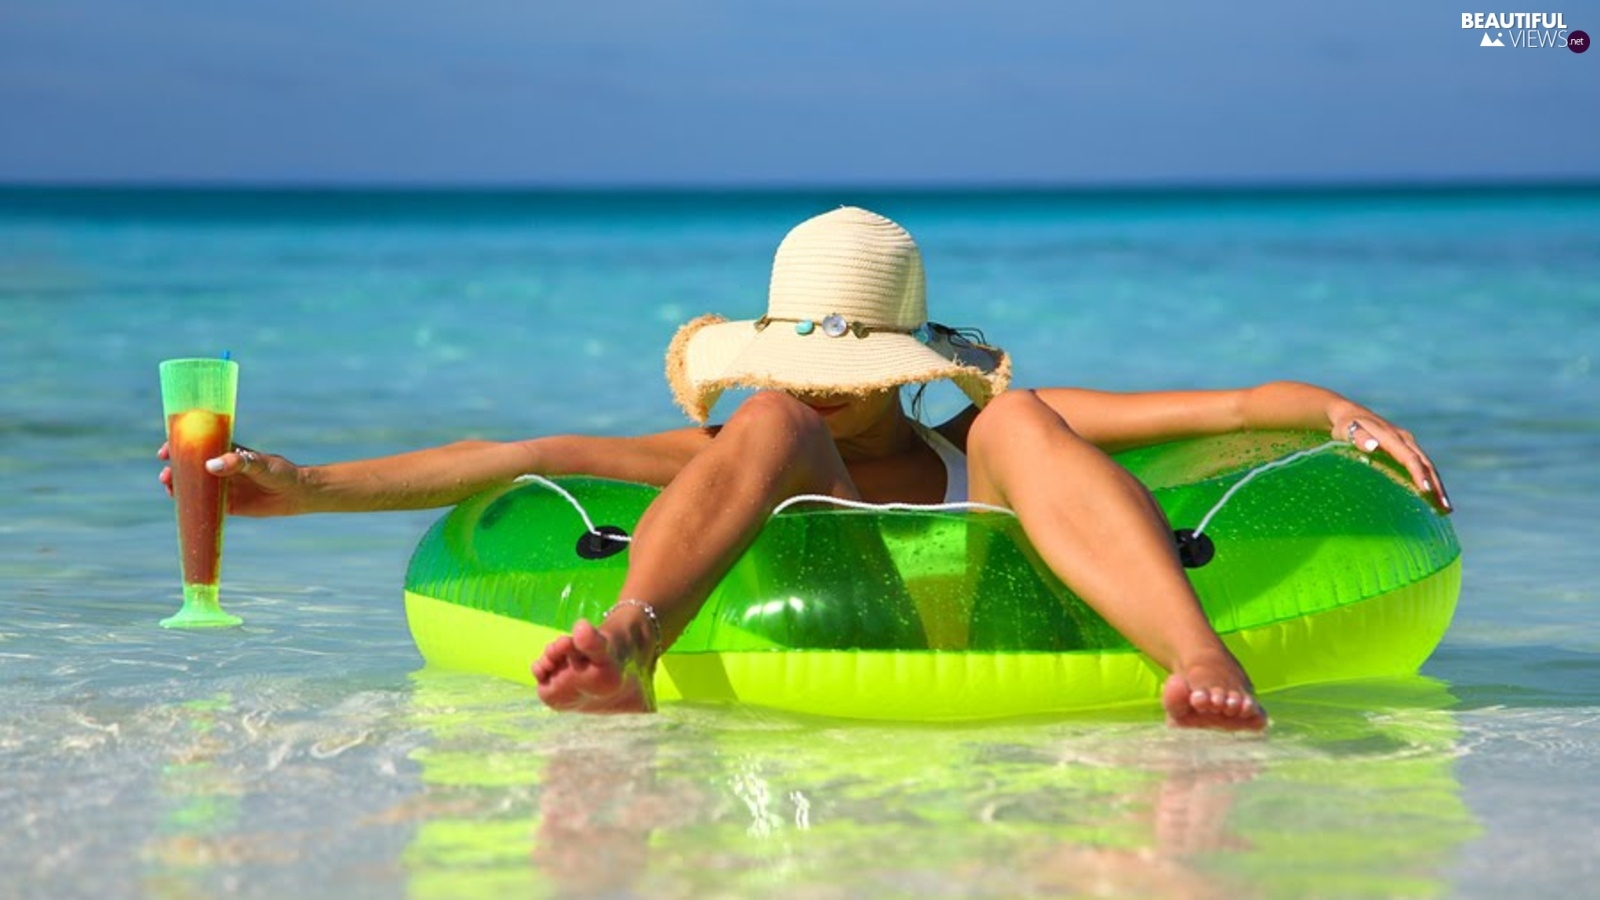 Hat, relaxation, Women, circle, water